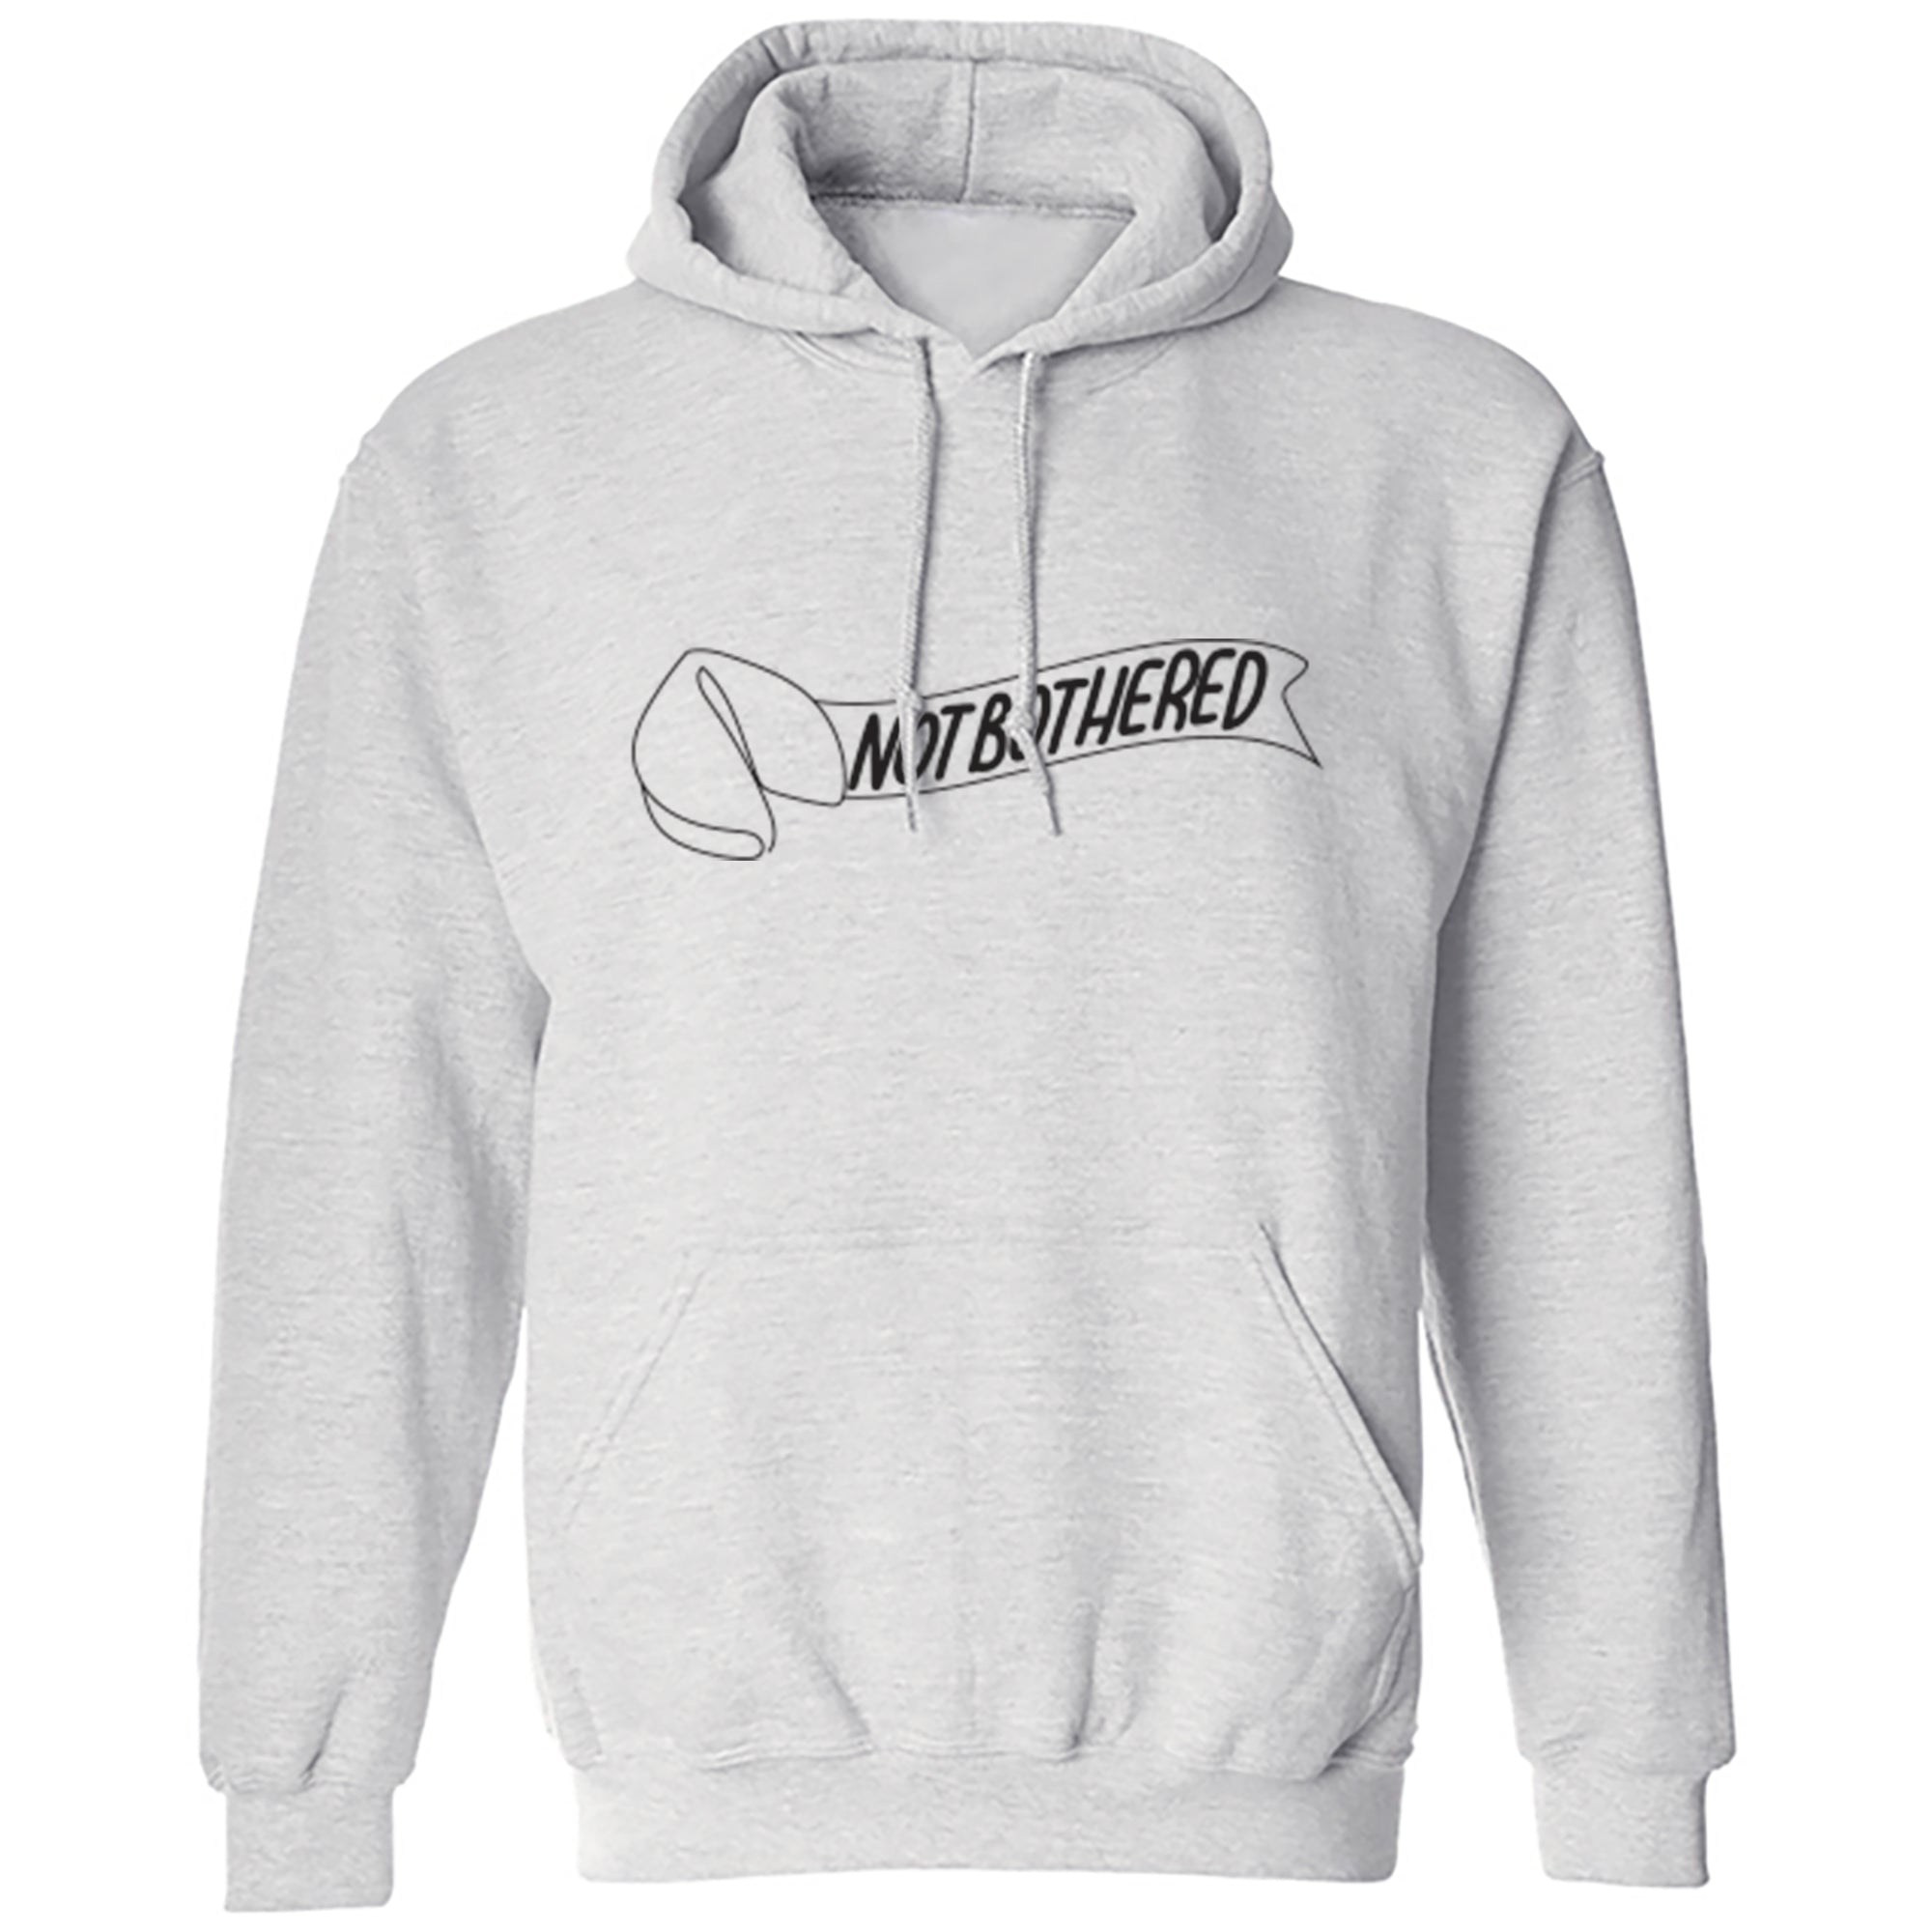 Not Bothered Unisex Hoodie S0023 - Illustrated Identity Ltd.